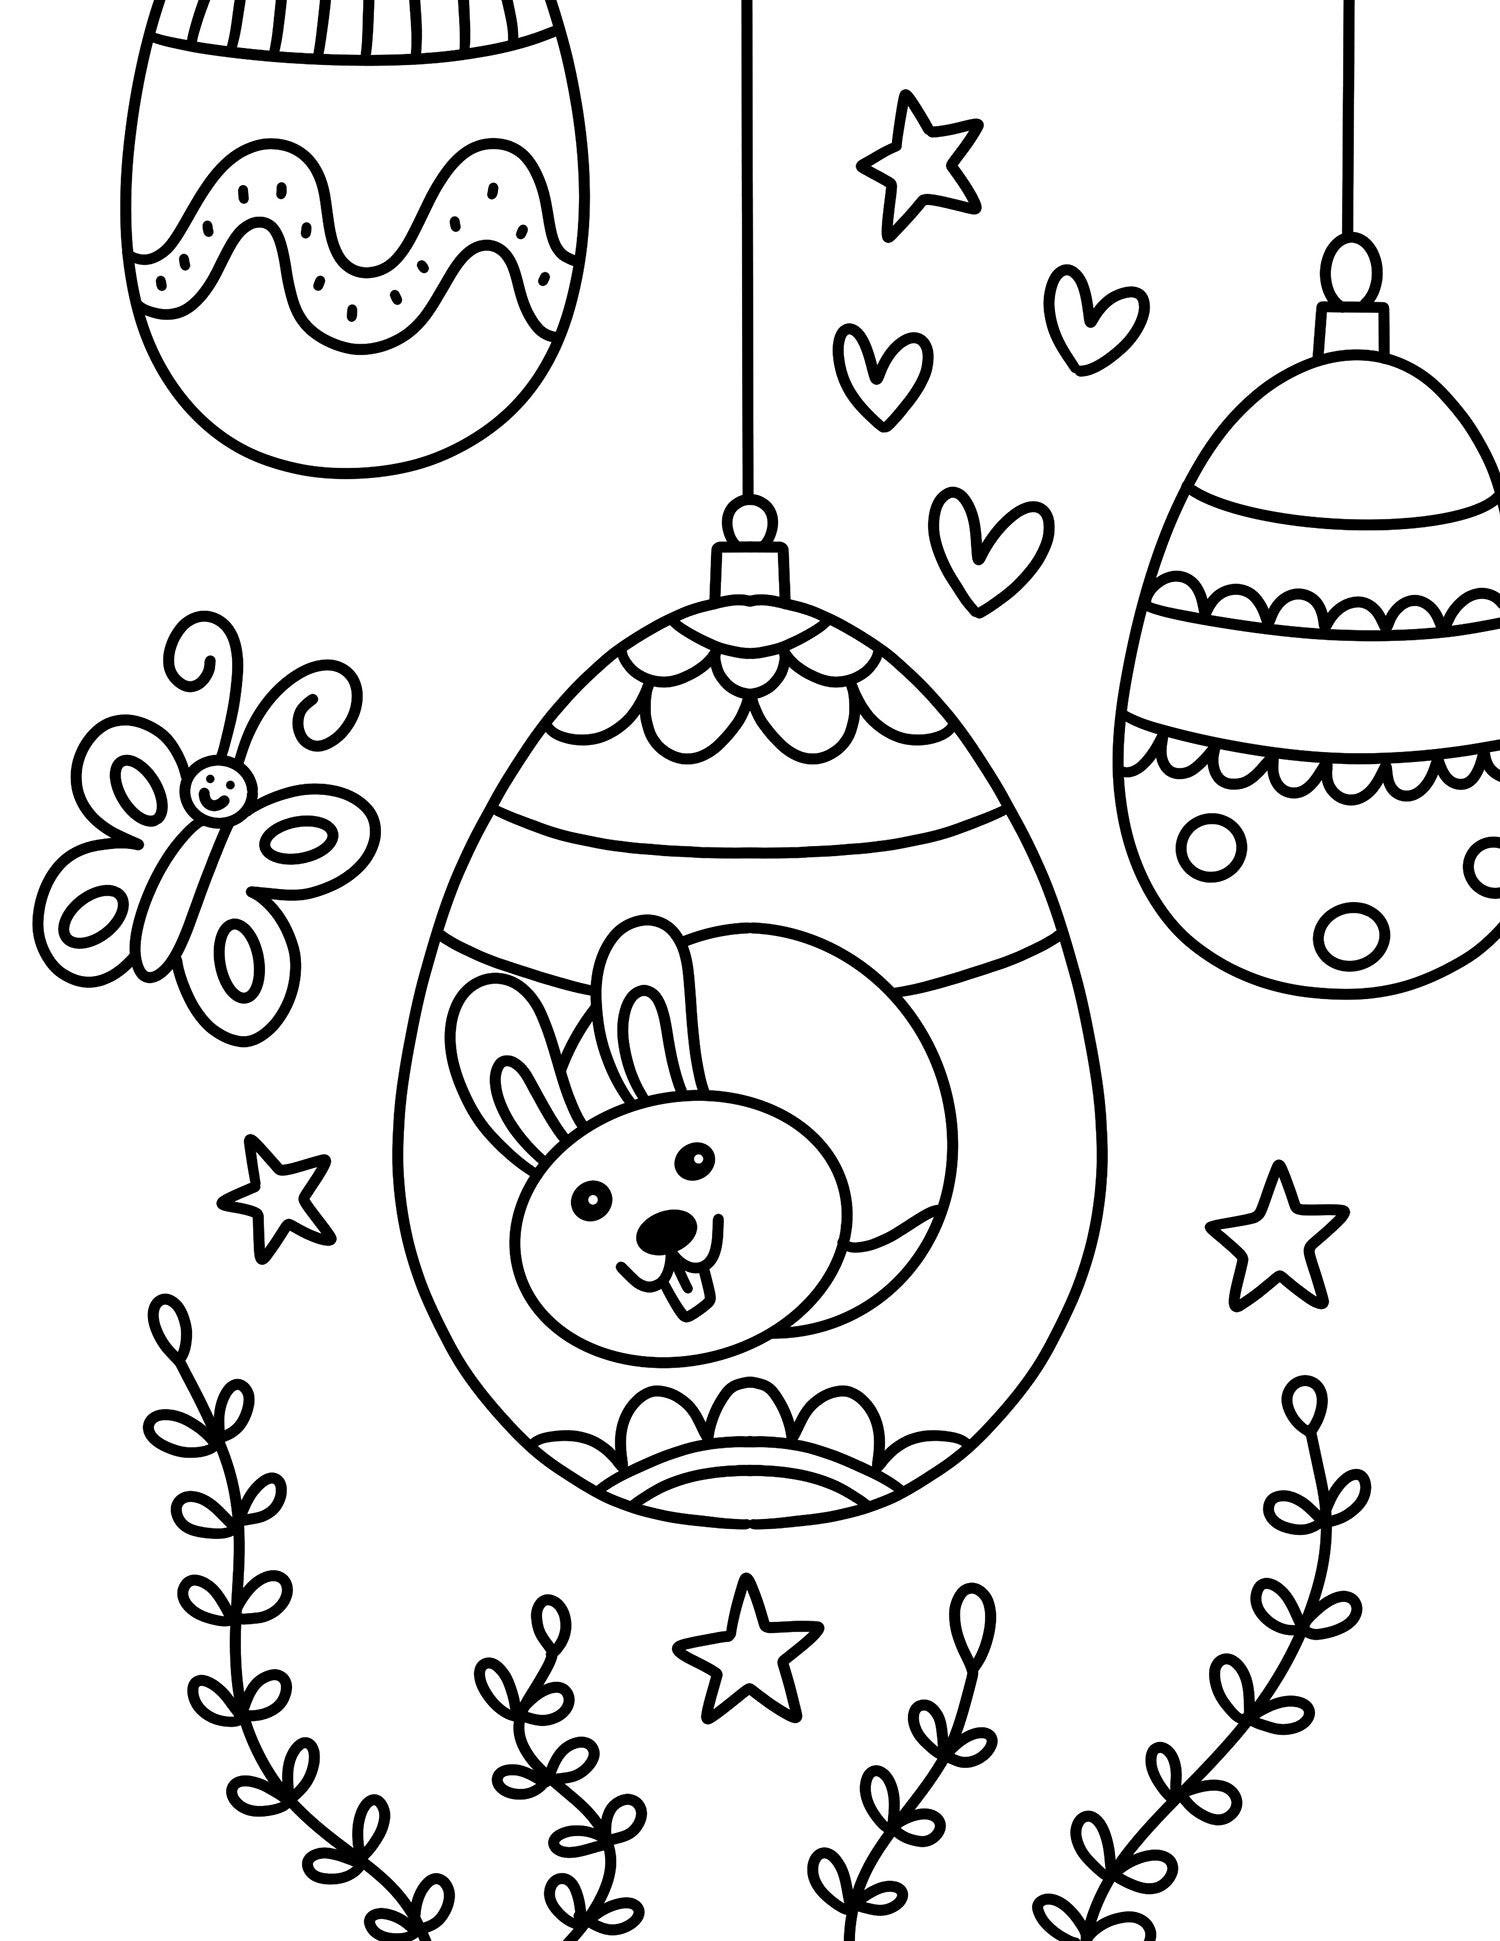 coloring pages : Easter Coloring Sheets For Kids Luxury Beginning ... | 1941x1500